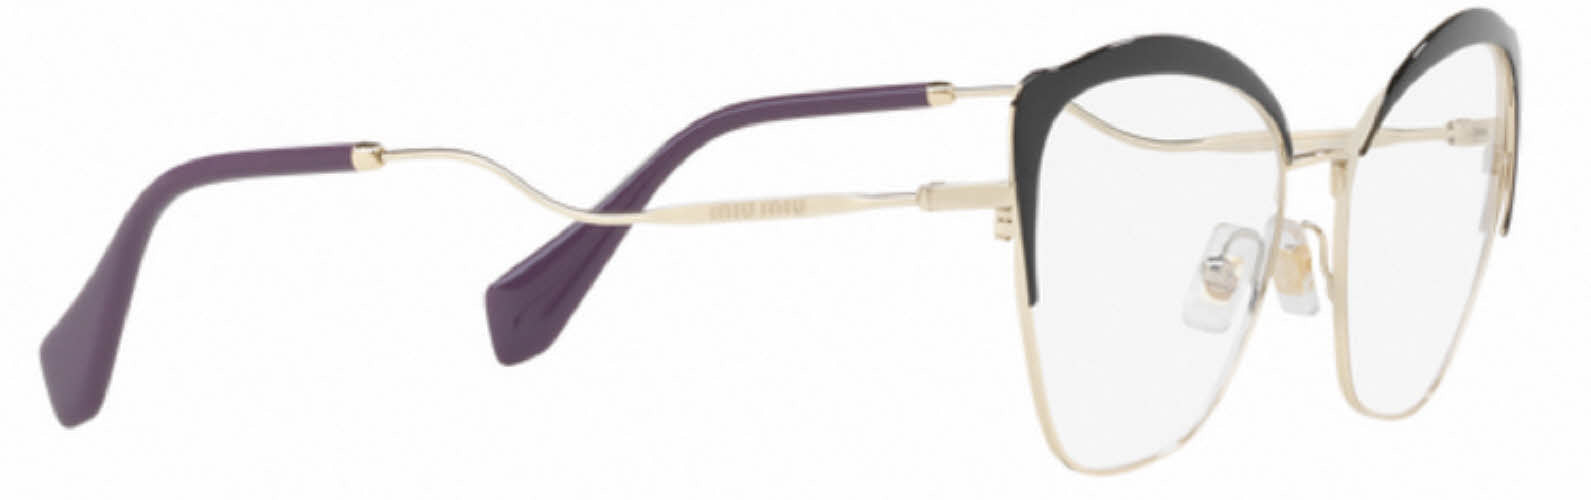 miu miu sunglasses and eyeglasses frames are a part of the family of a brand that is known worldwide for its exceptional clothing design and fabrication - Miu Miu Glasses Frames